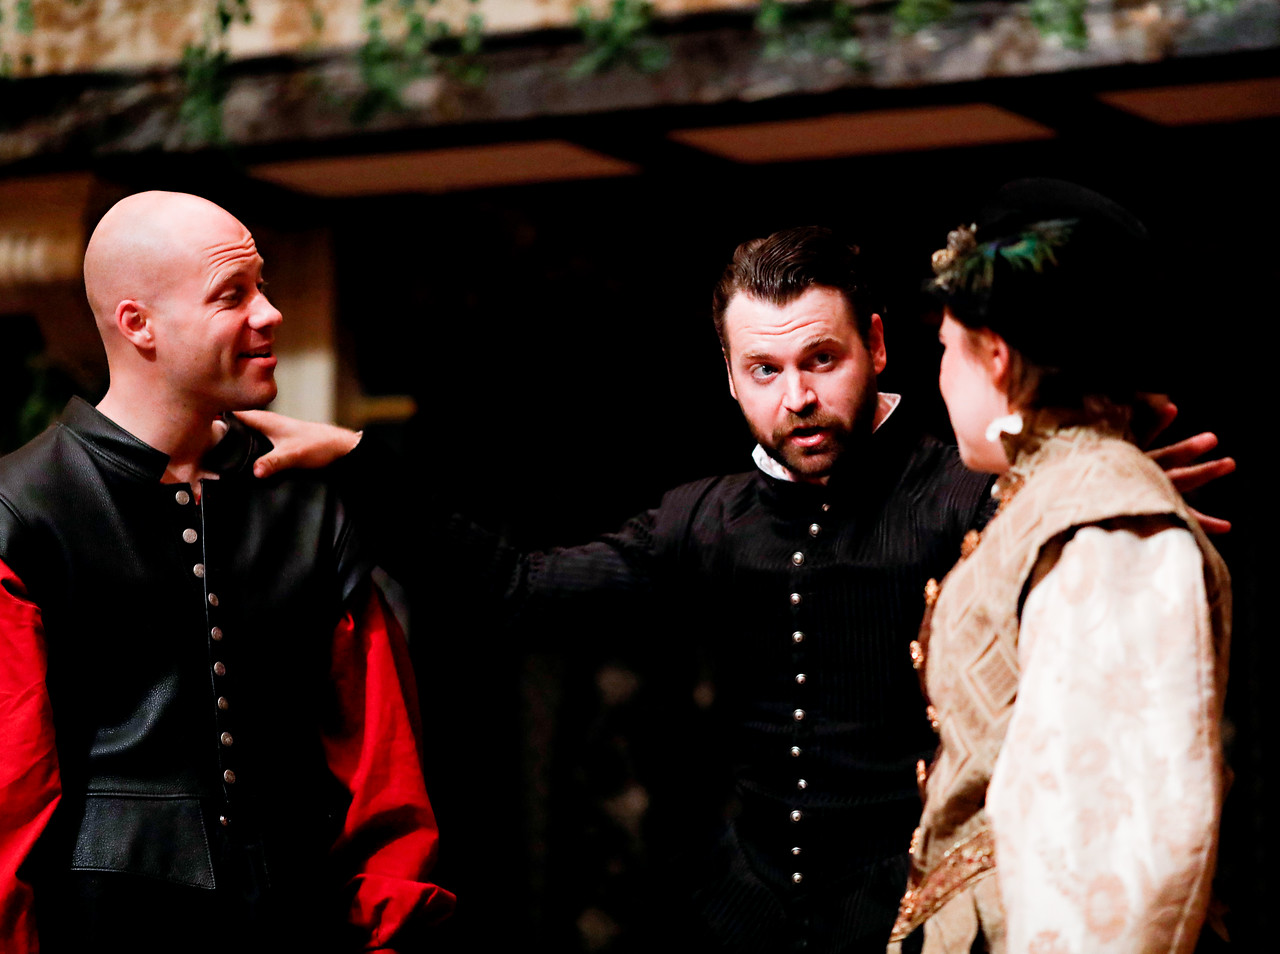 Greg Brostrom as Borachio, Josh Innerst as Don John, and Allie Babich as Conrad in MUCH ADO ABOUT NOTHING. Photo by Lindsey Walters.